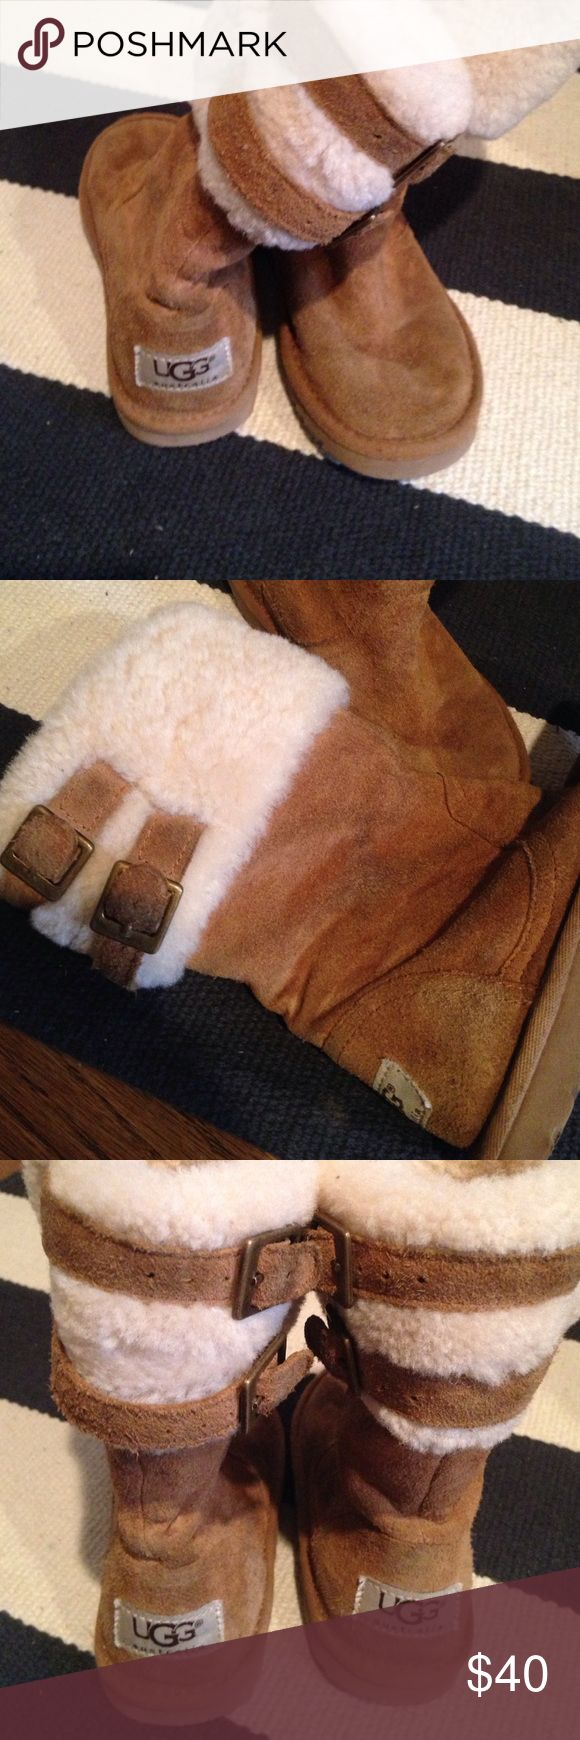 Girls Ugg boots Super cute tan Ugg boots. Double buckle detail. Some markings from wear but overall in good shape, no tears. UGG Shoes Winter & Rain Boots